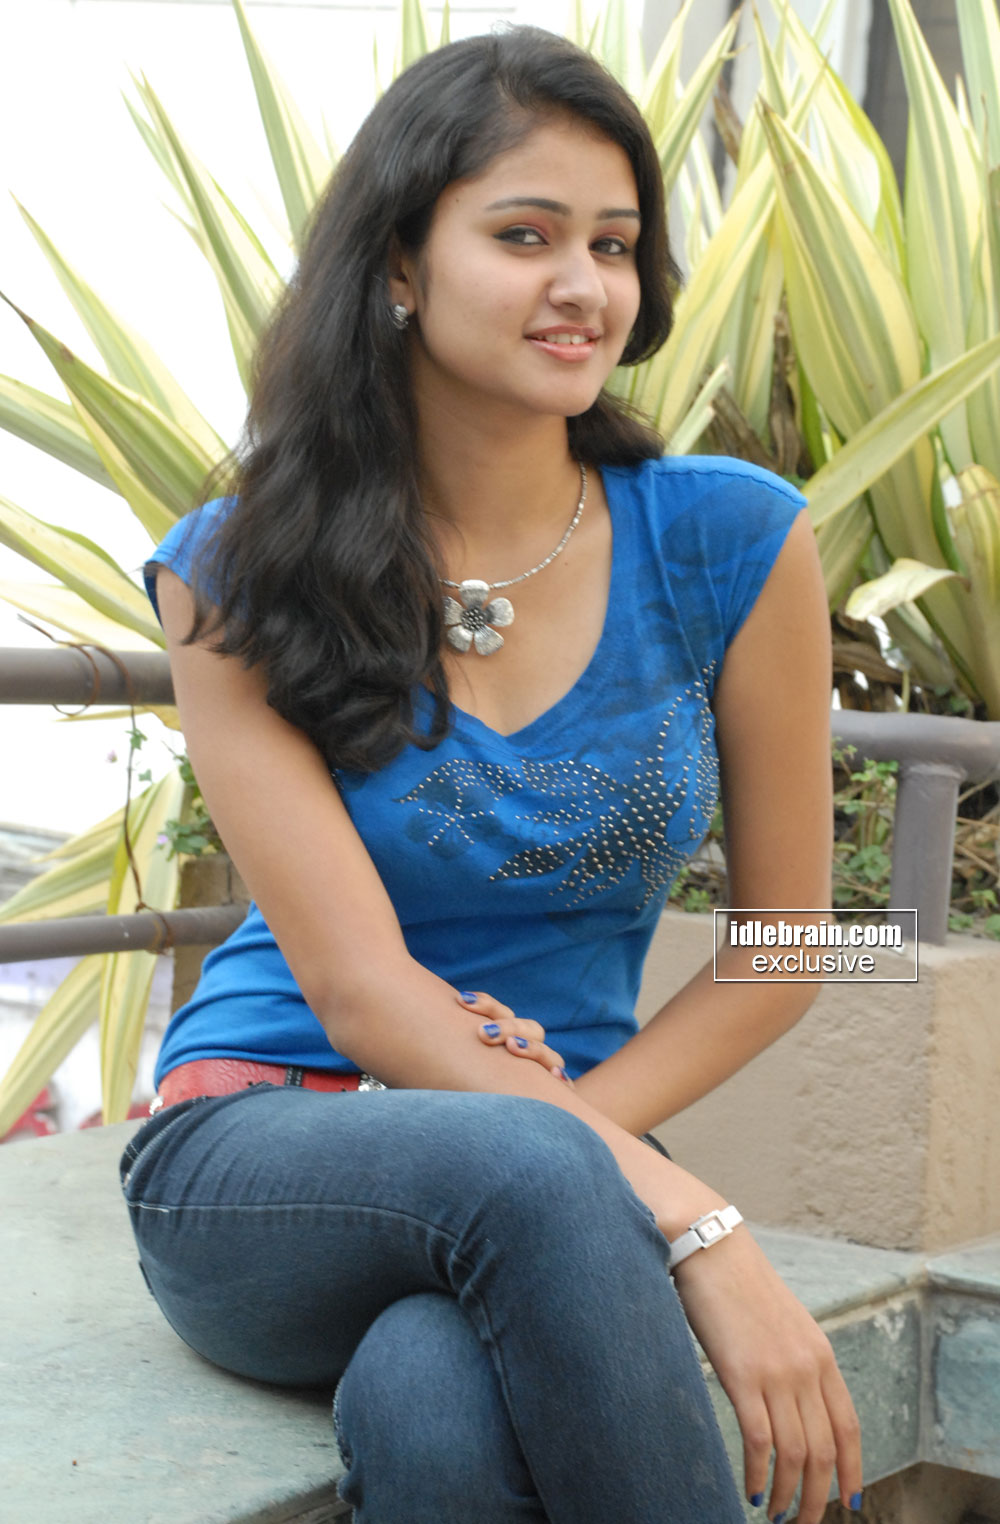 Tamil teens kausalya cute photoshoot Cute teenage girls pics